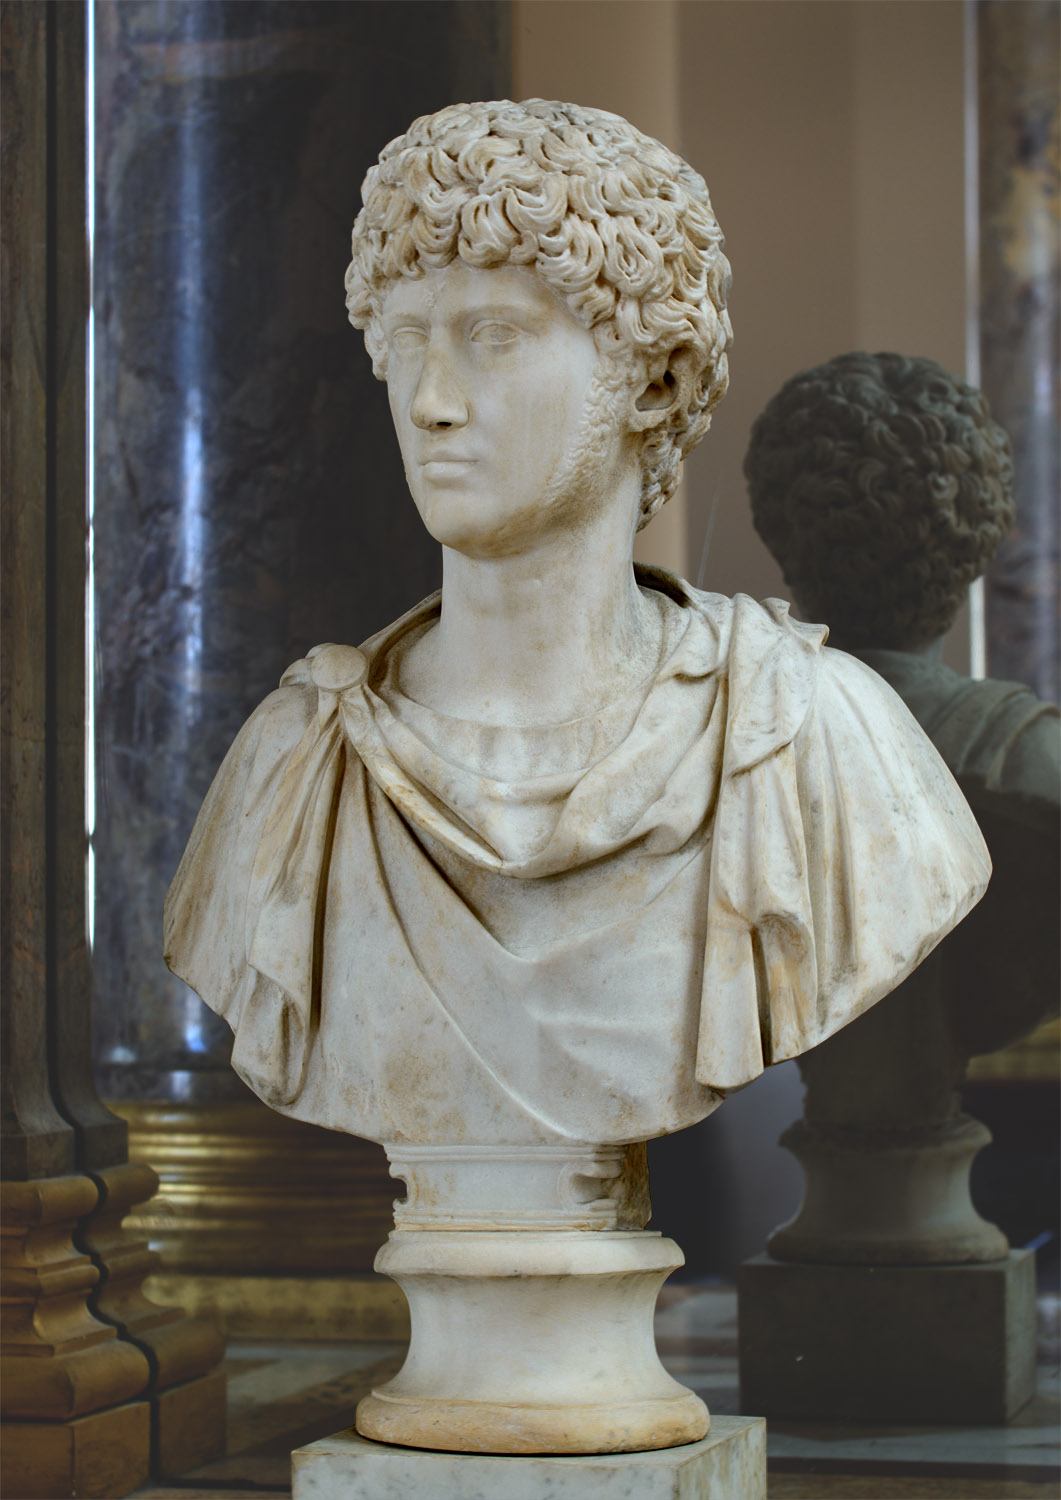 Lucius Verus as a young man. Marble. Ca. 150 CE. Inv. No. Ma 1136. Paris, Louvre Museum